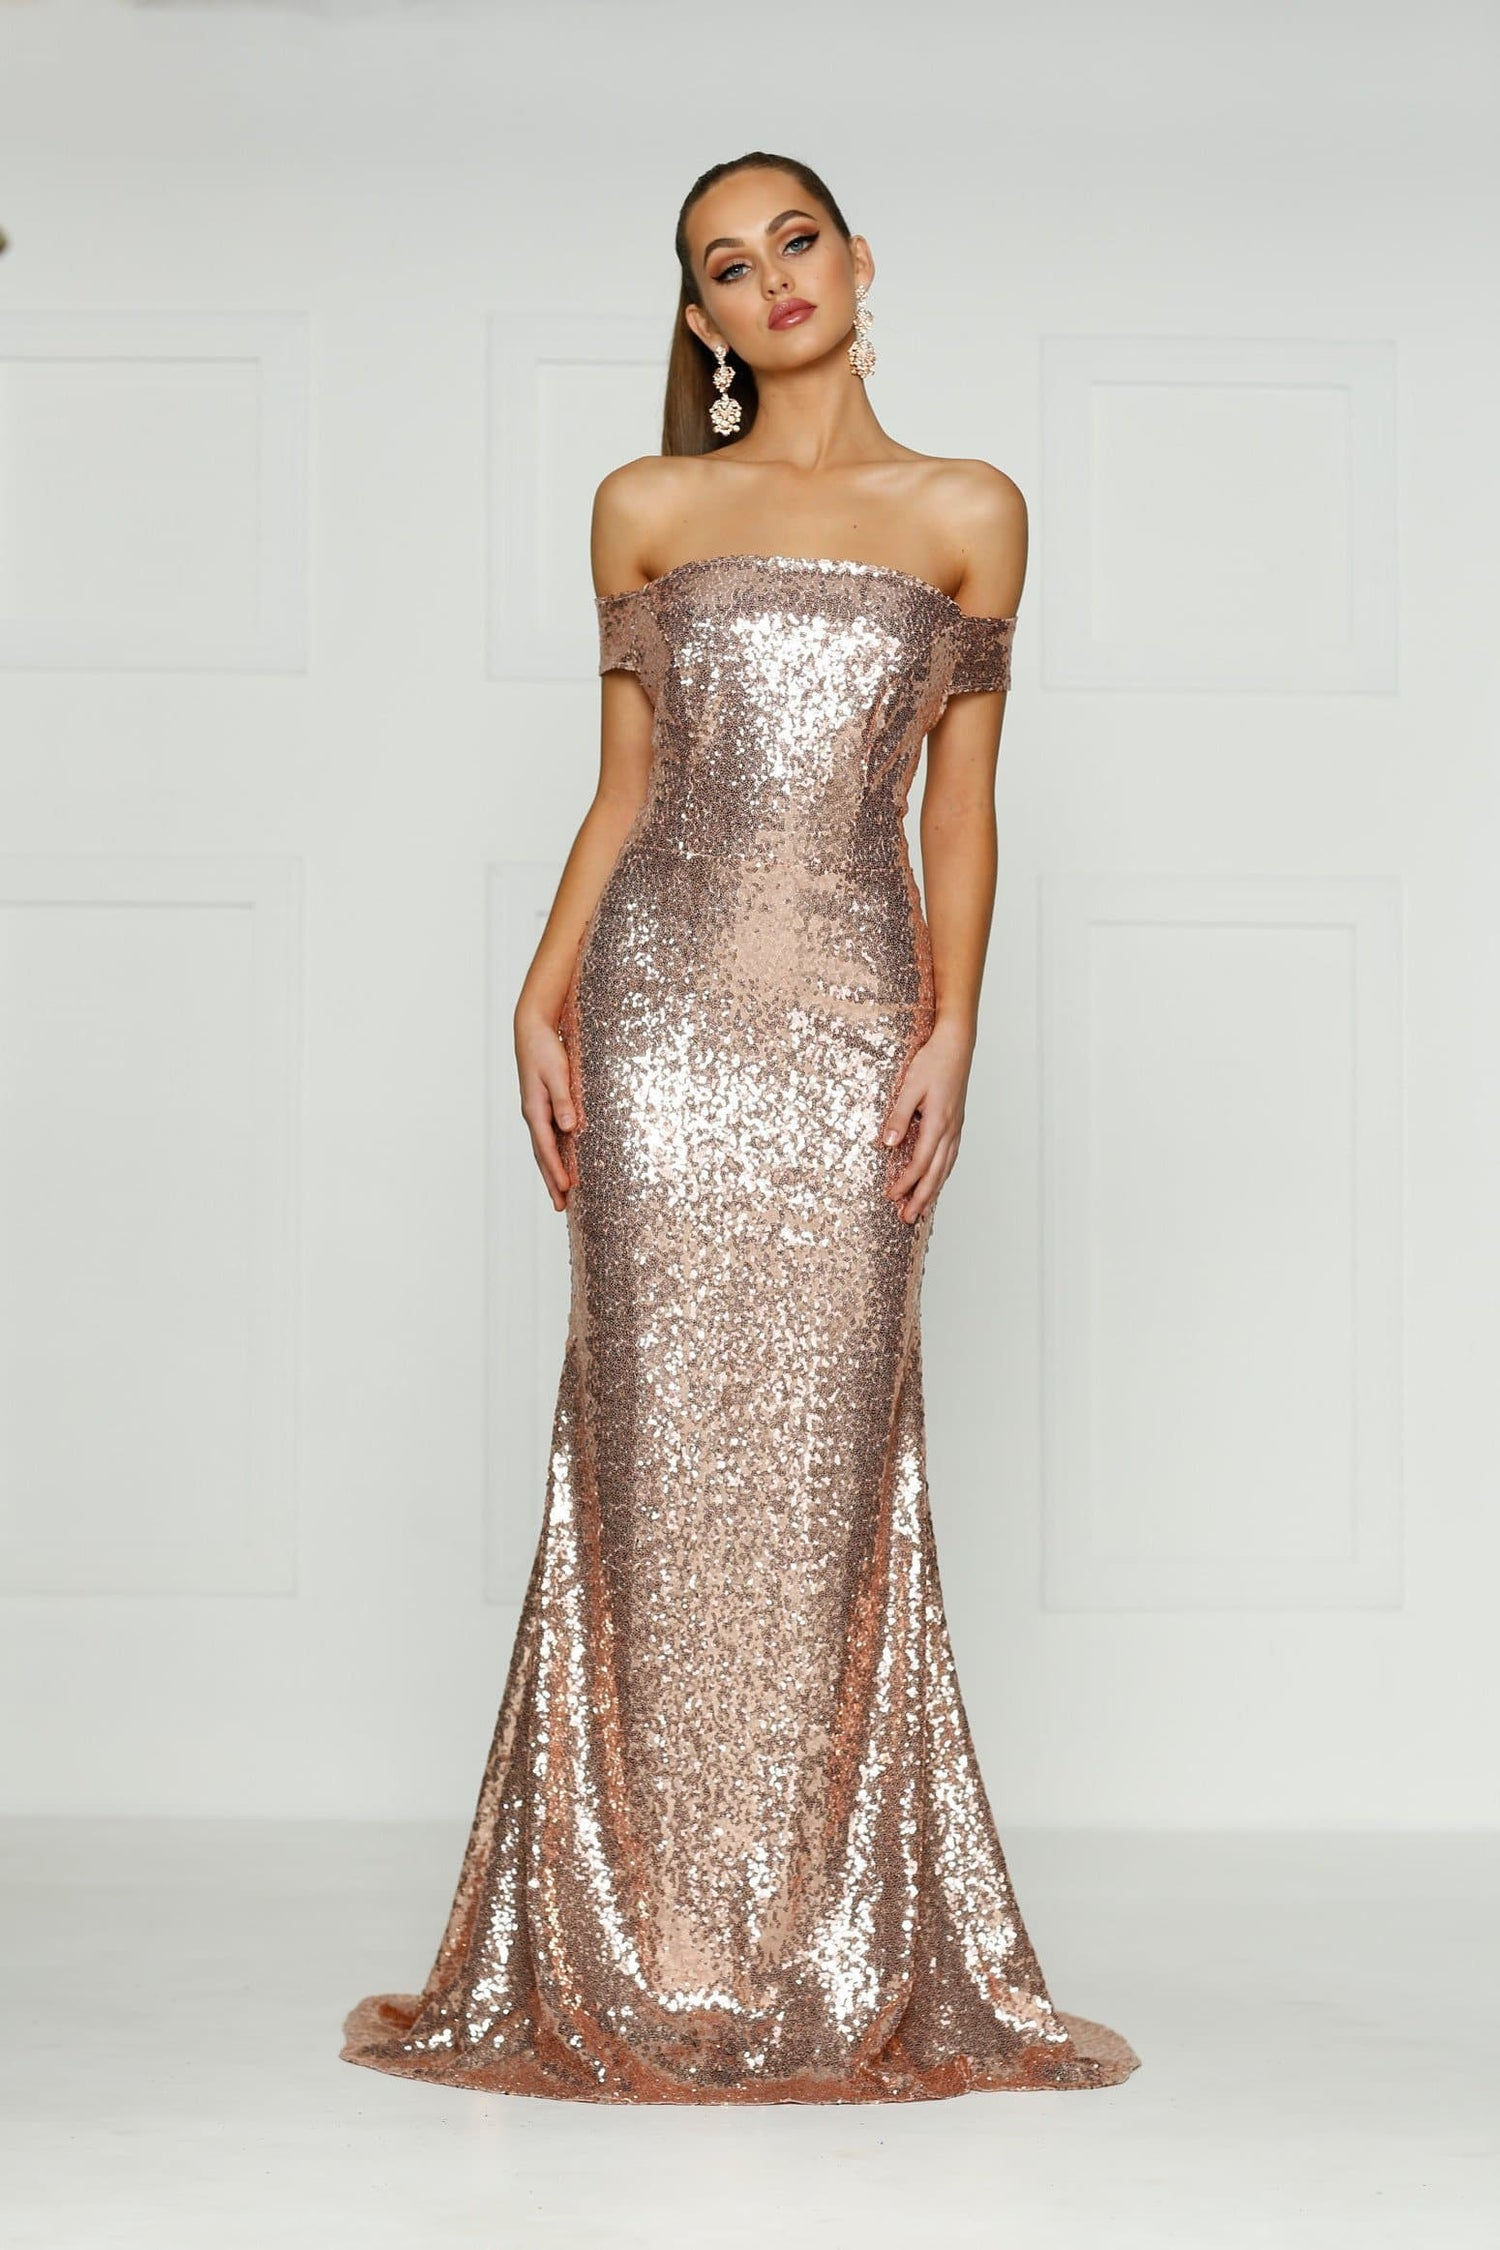 A&N Jacqui- Off-Shoulder Sequin Dress with Low Back in Rose Gold